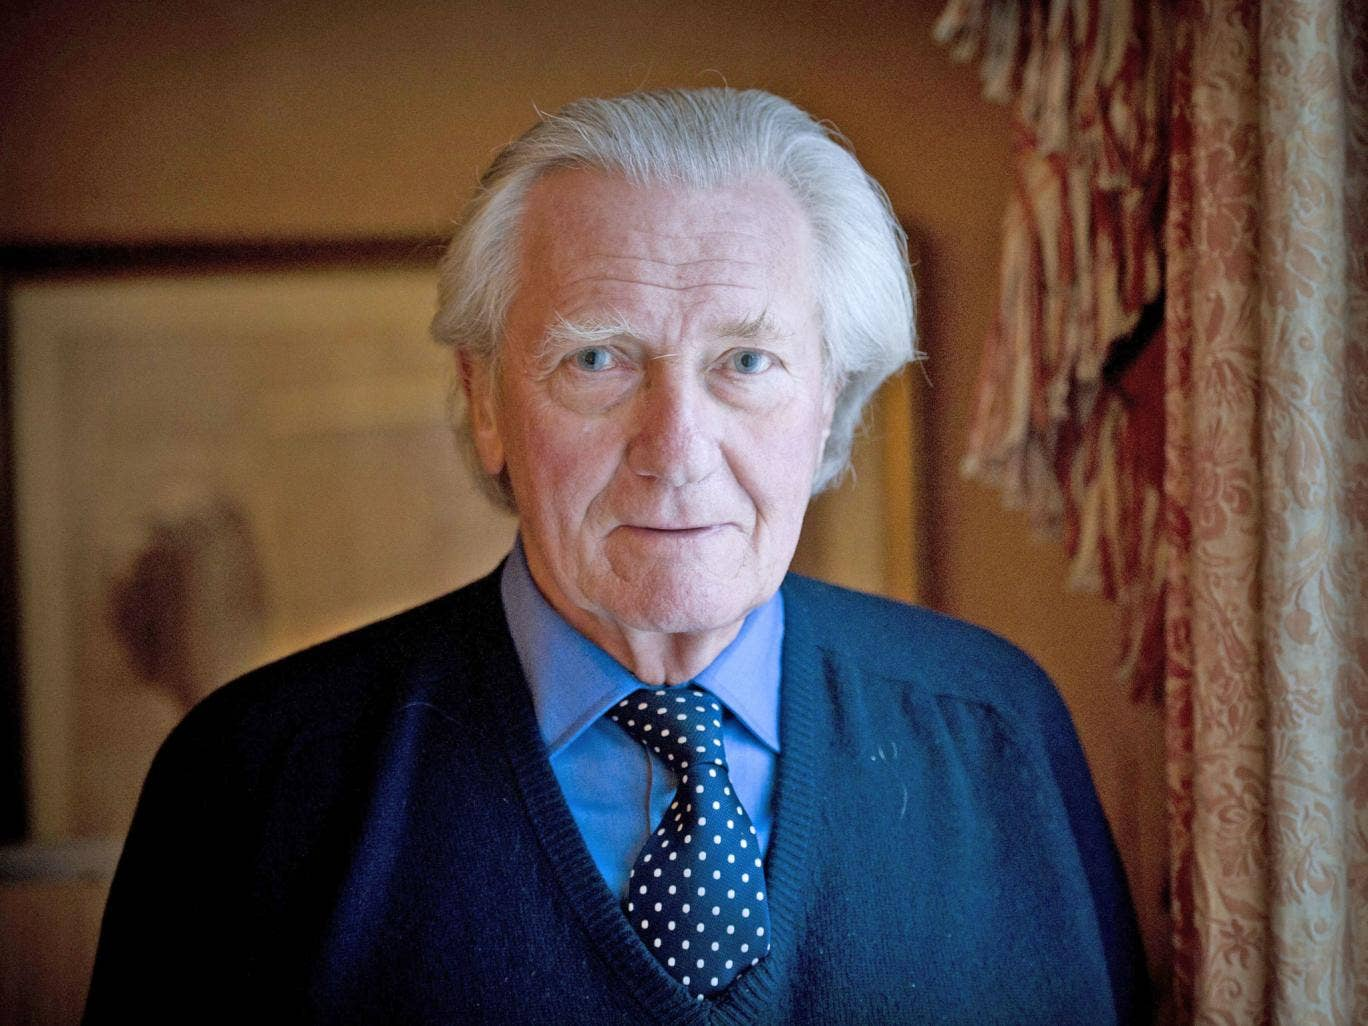 Lord Heseltine has been consulting with George Osborne on regenerating British cities